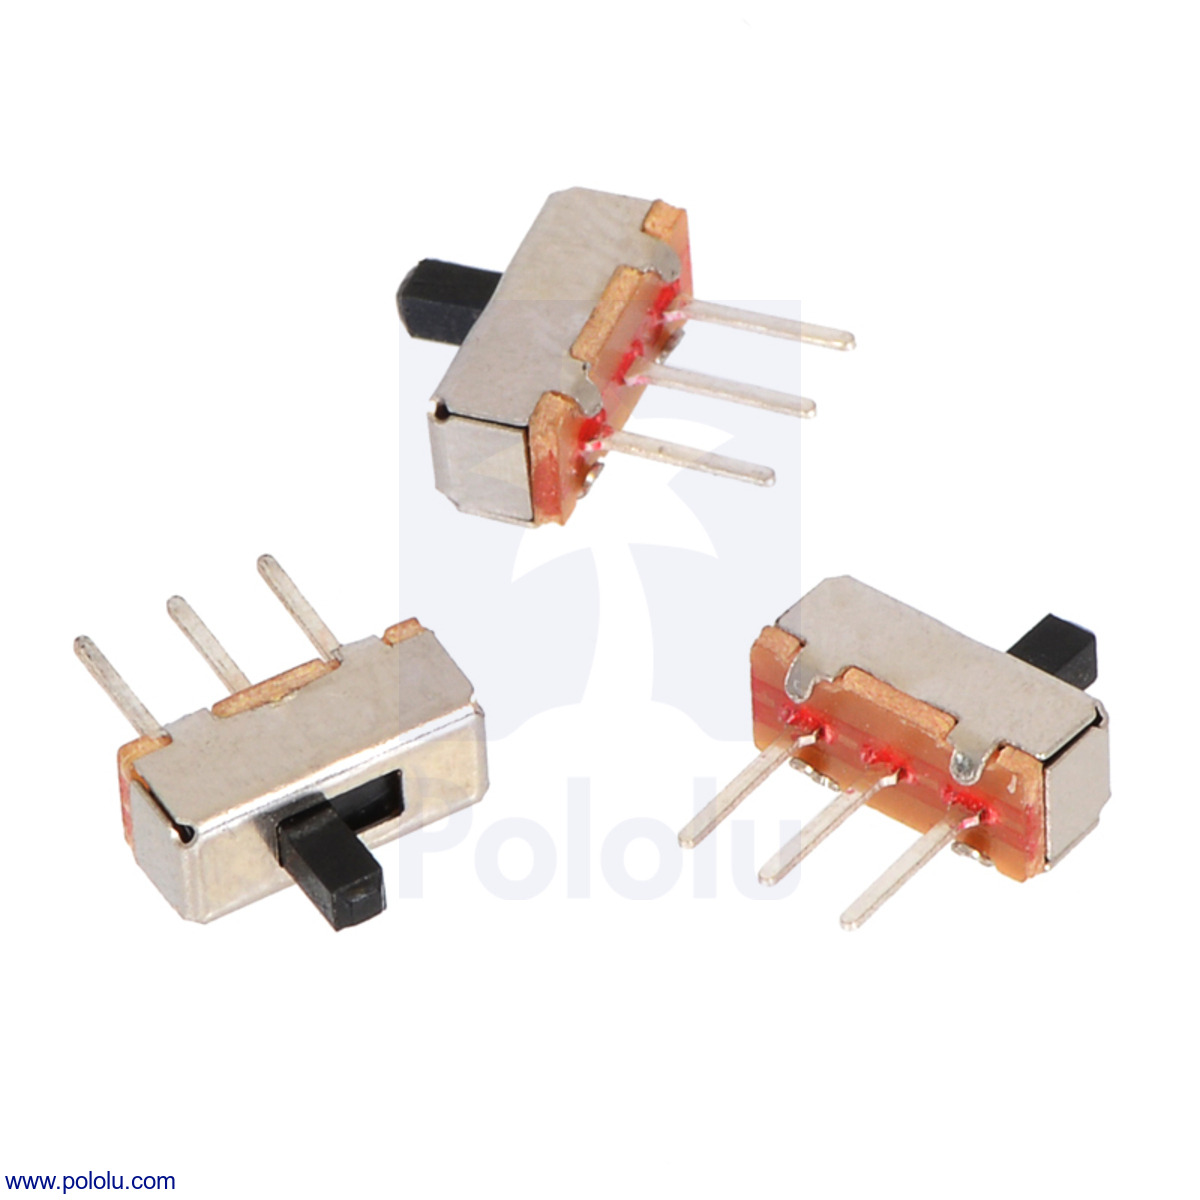 Pololu Switches Buttons And Relays R C Switch 3 For Radio Control Applications New